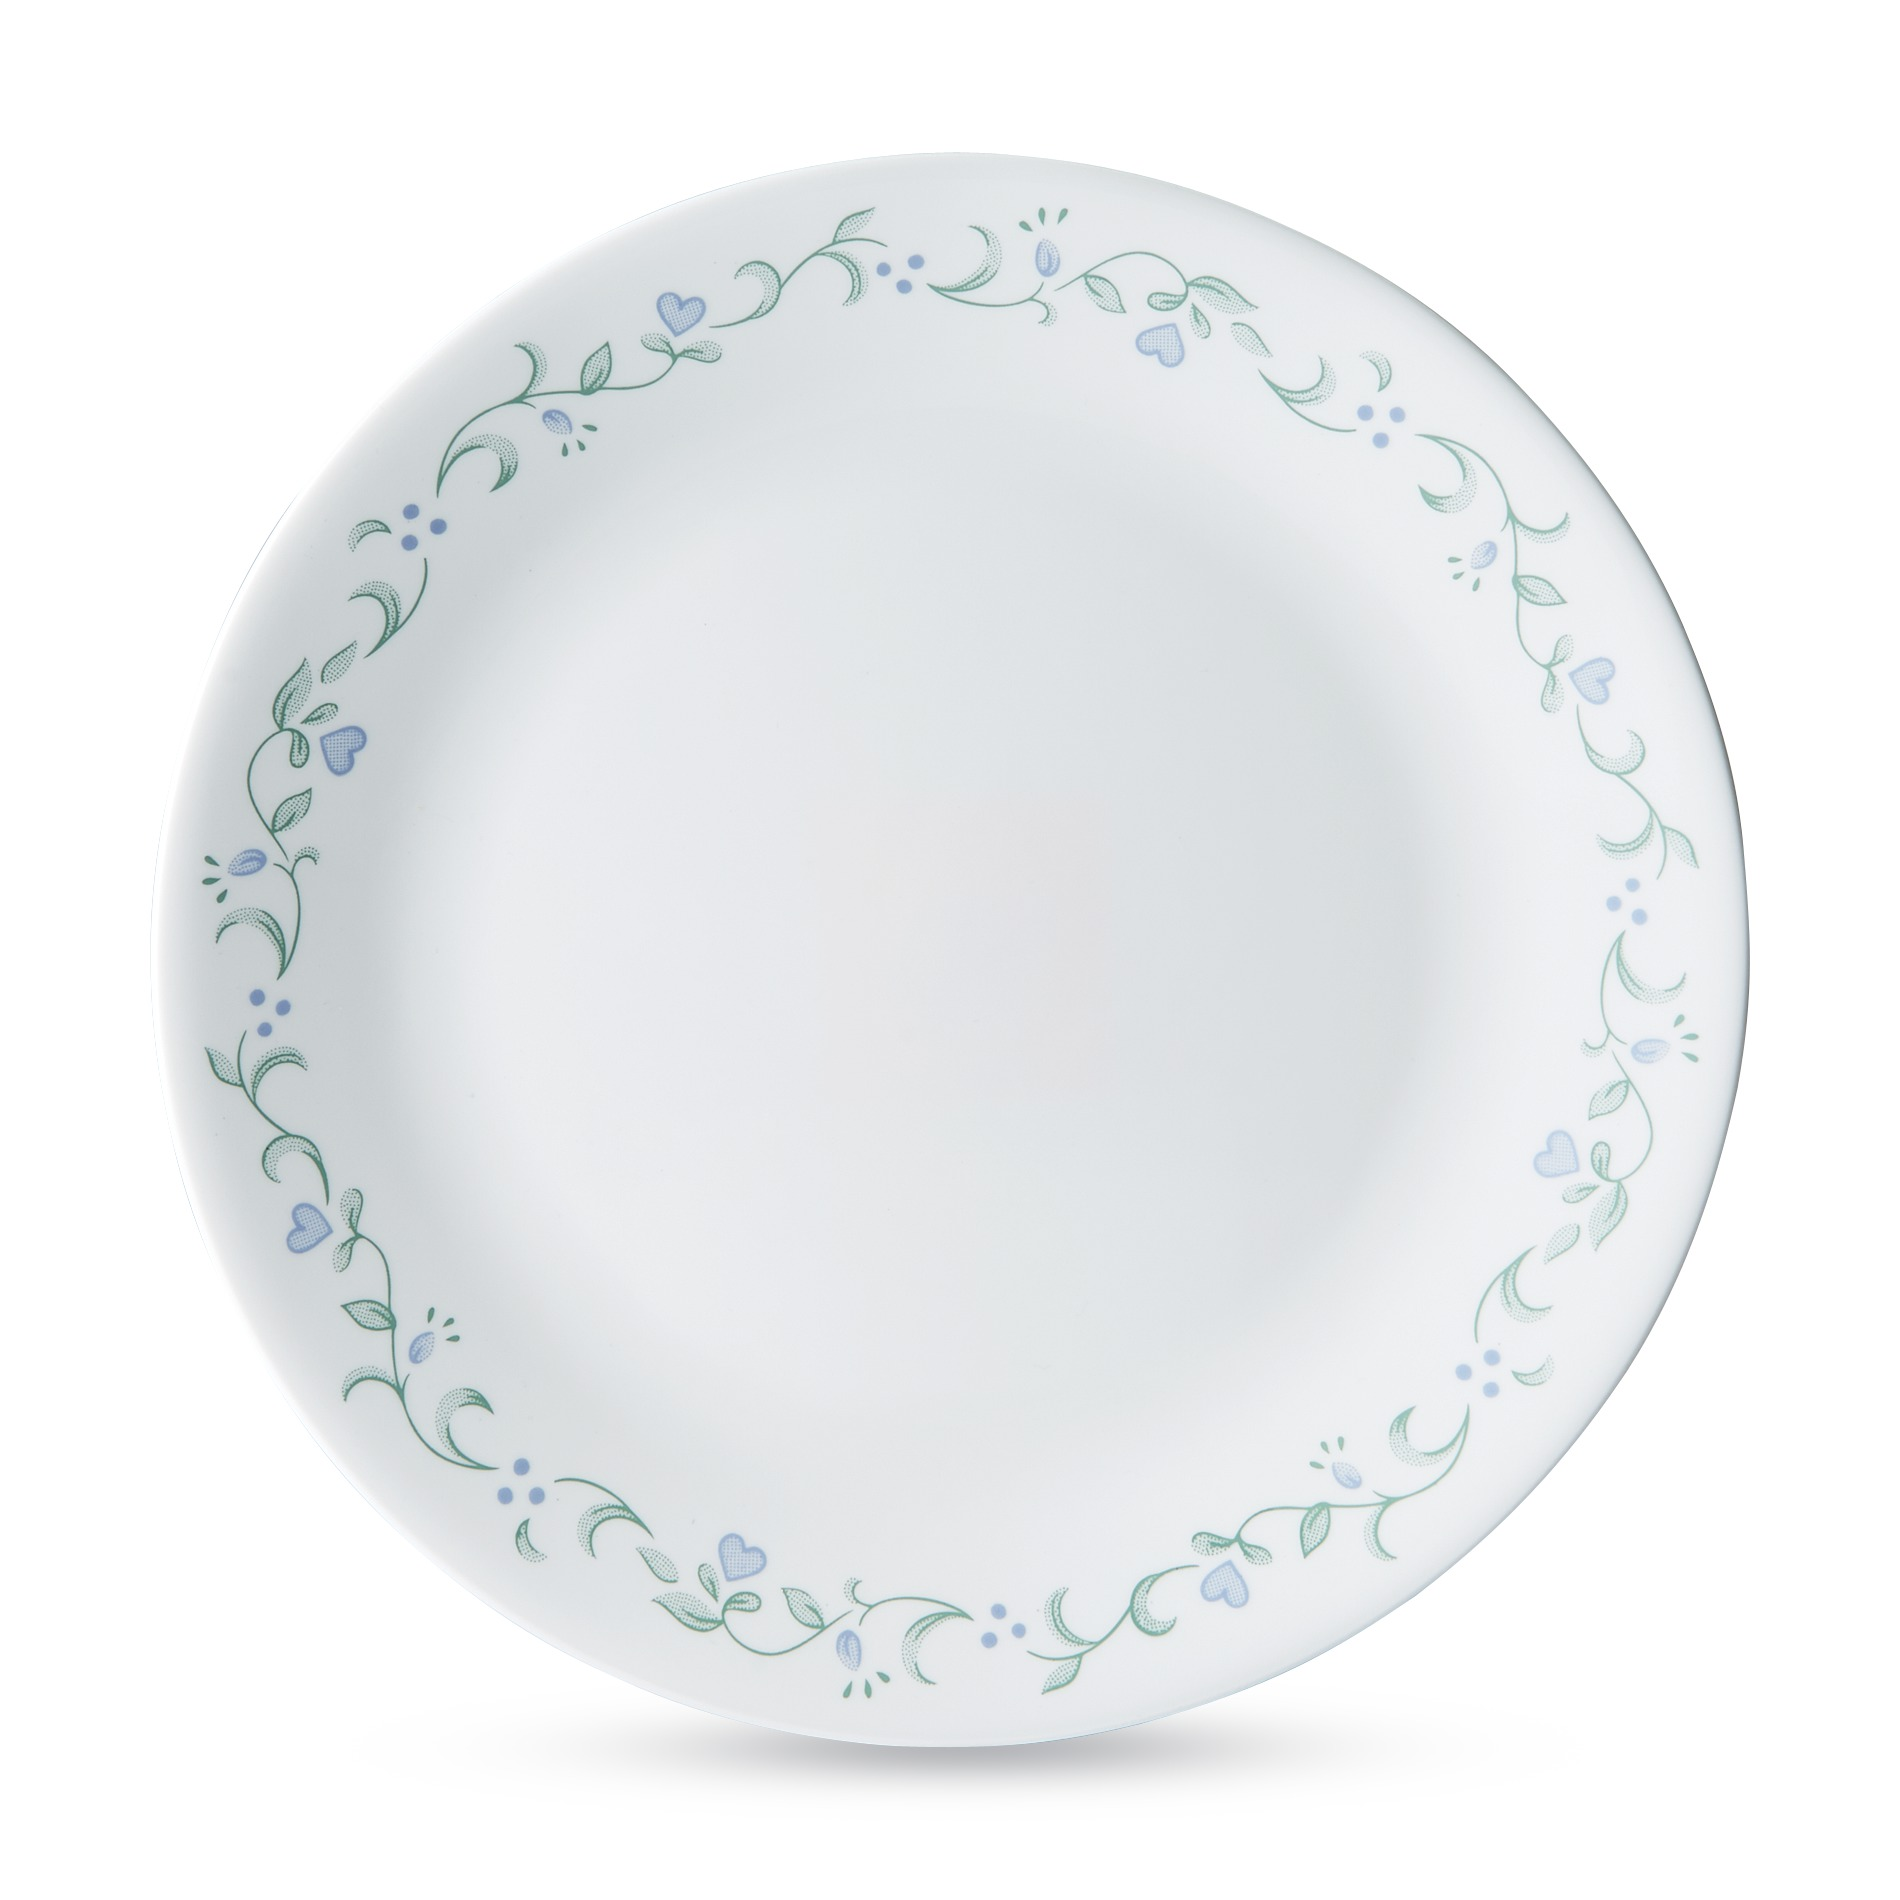 Corelle Corelle Livingware 16-Piece Dinnerware Set - Country Cottage alternate image  sc 1 st  Sears & Corelle Livingware 16-Piece Dinnerware Set - Country Cottage